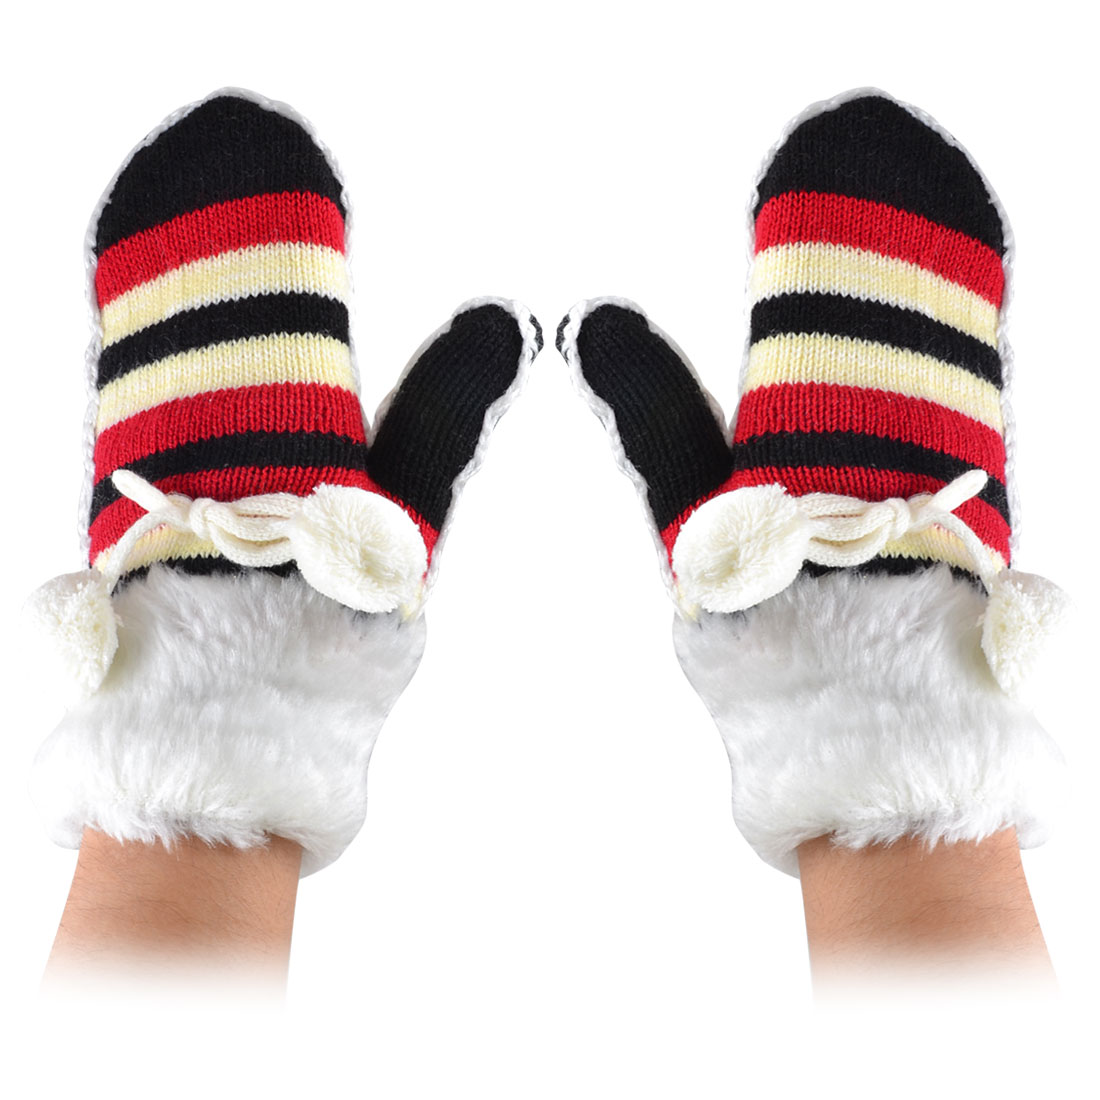 Pair Black Red Stripes Pattern Pom Pom Decor Knitting Winter Snow Warm Elastic Gloves Mittens